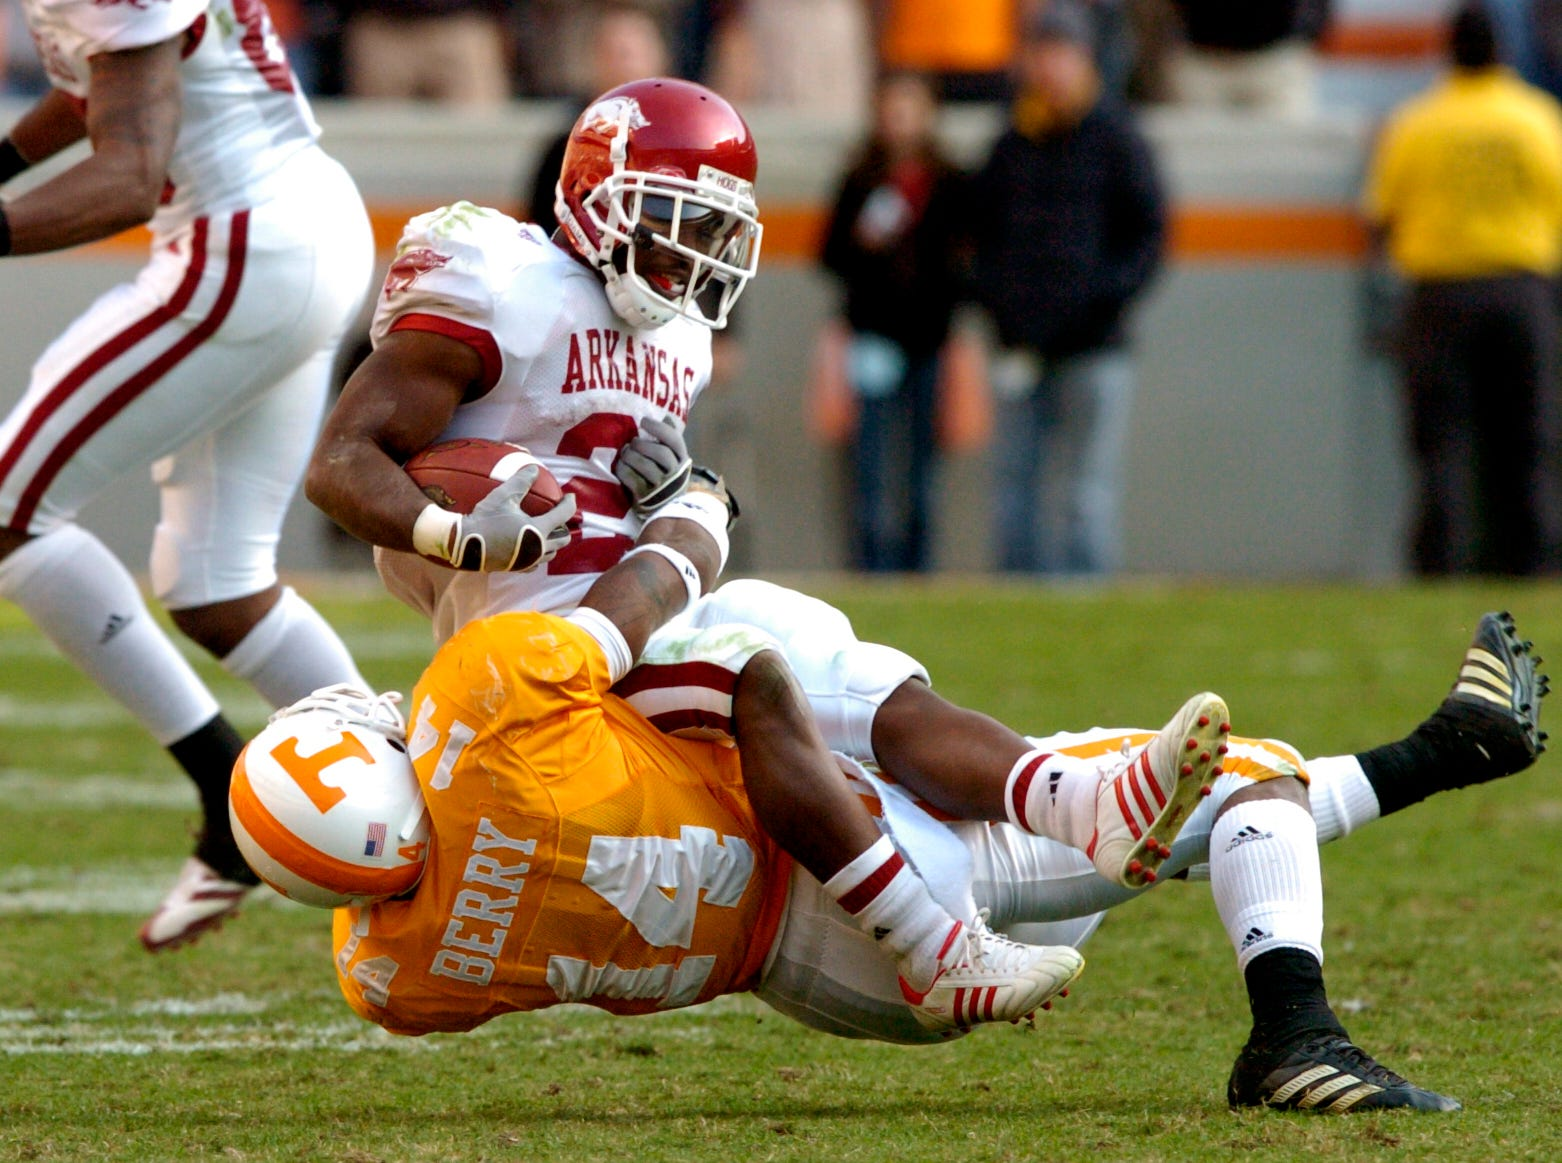 Tennessee safety Eric Berry tackles Arkansas tailback Michael Smith on Saturday at Neyland Stadium. The Vols trounced the Razorbacks 34-13, improving to 7-3 for the season and remaining the team to beat for the SEC East division title. Berry had six tackles and two interceptions and was named the SEC freshman of the week.